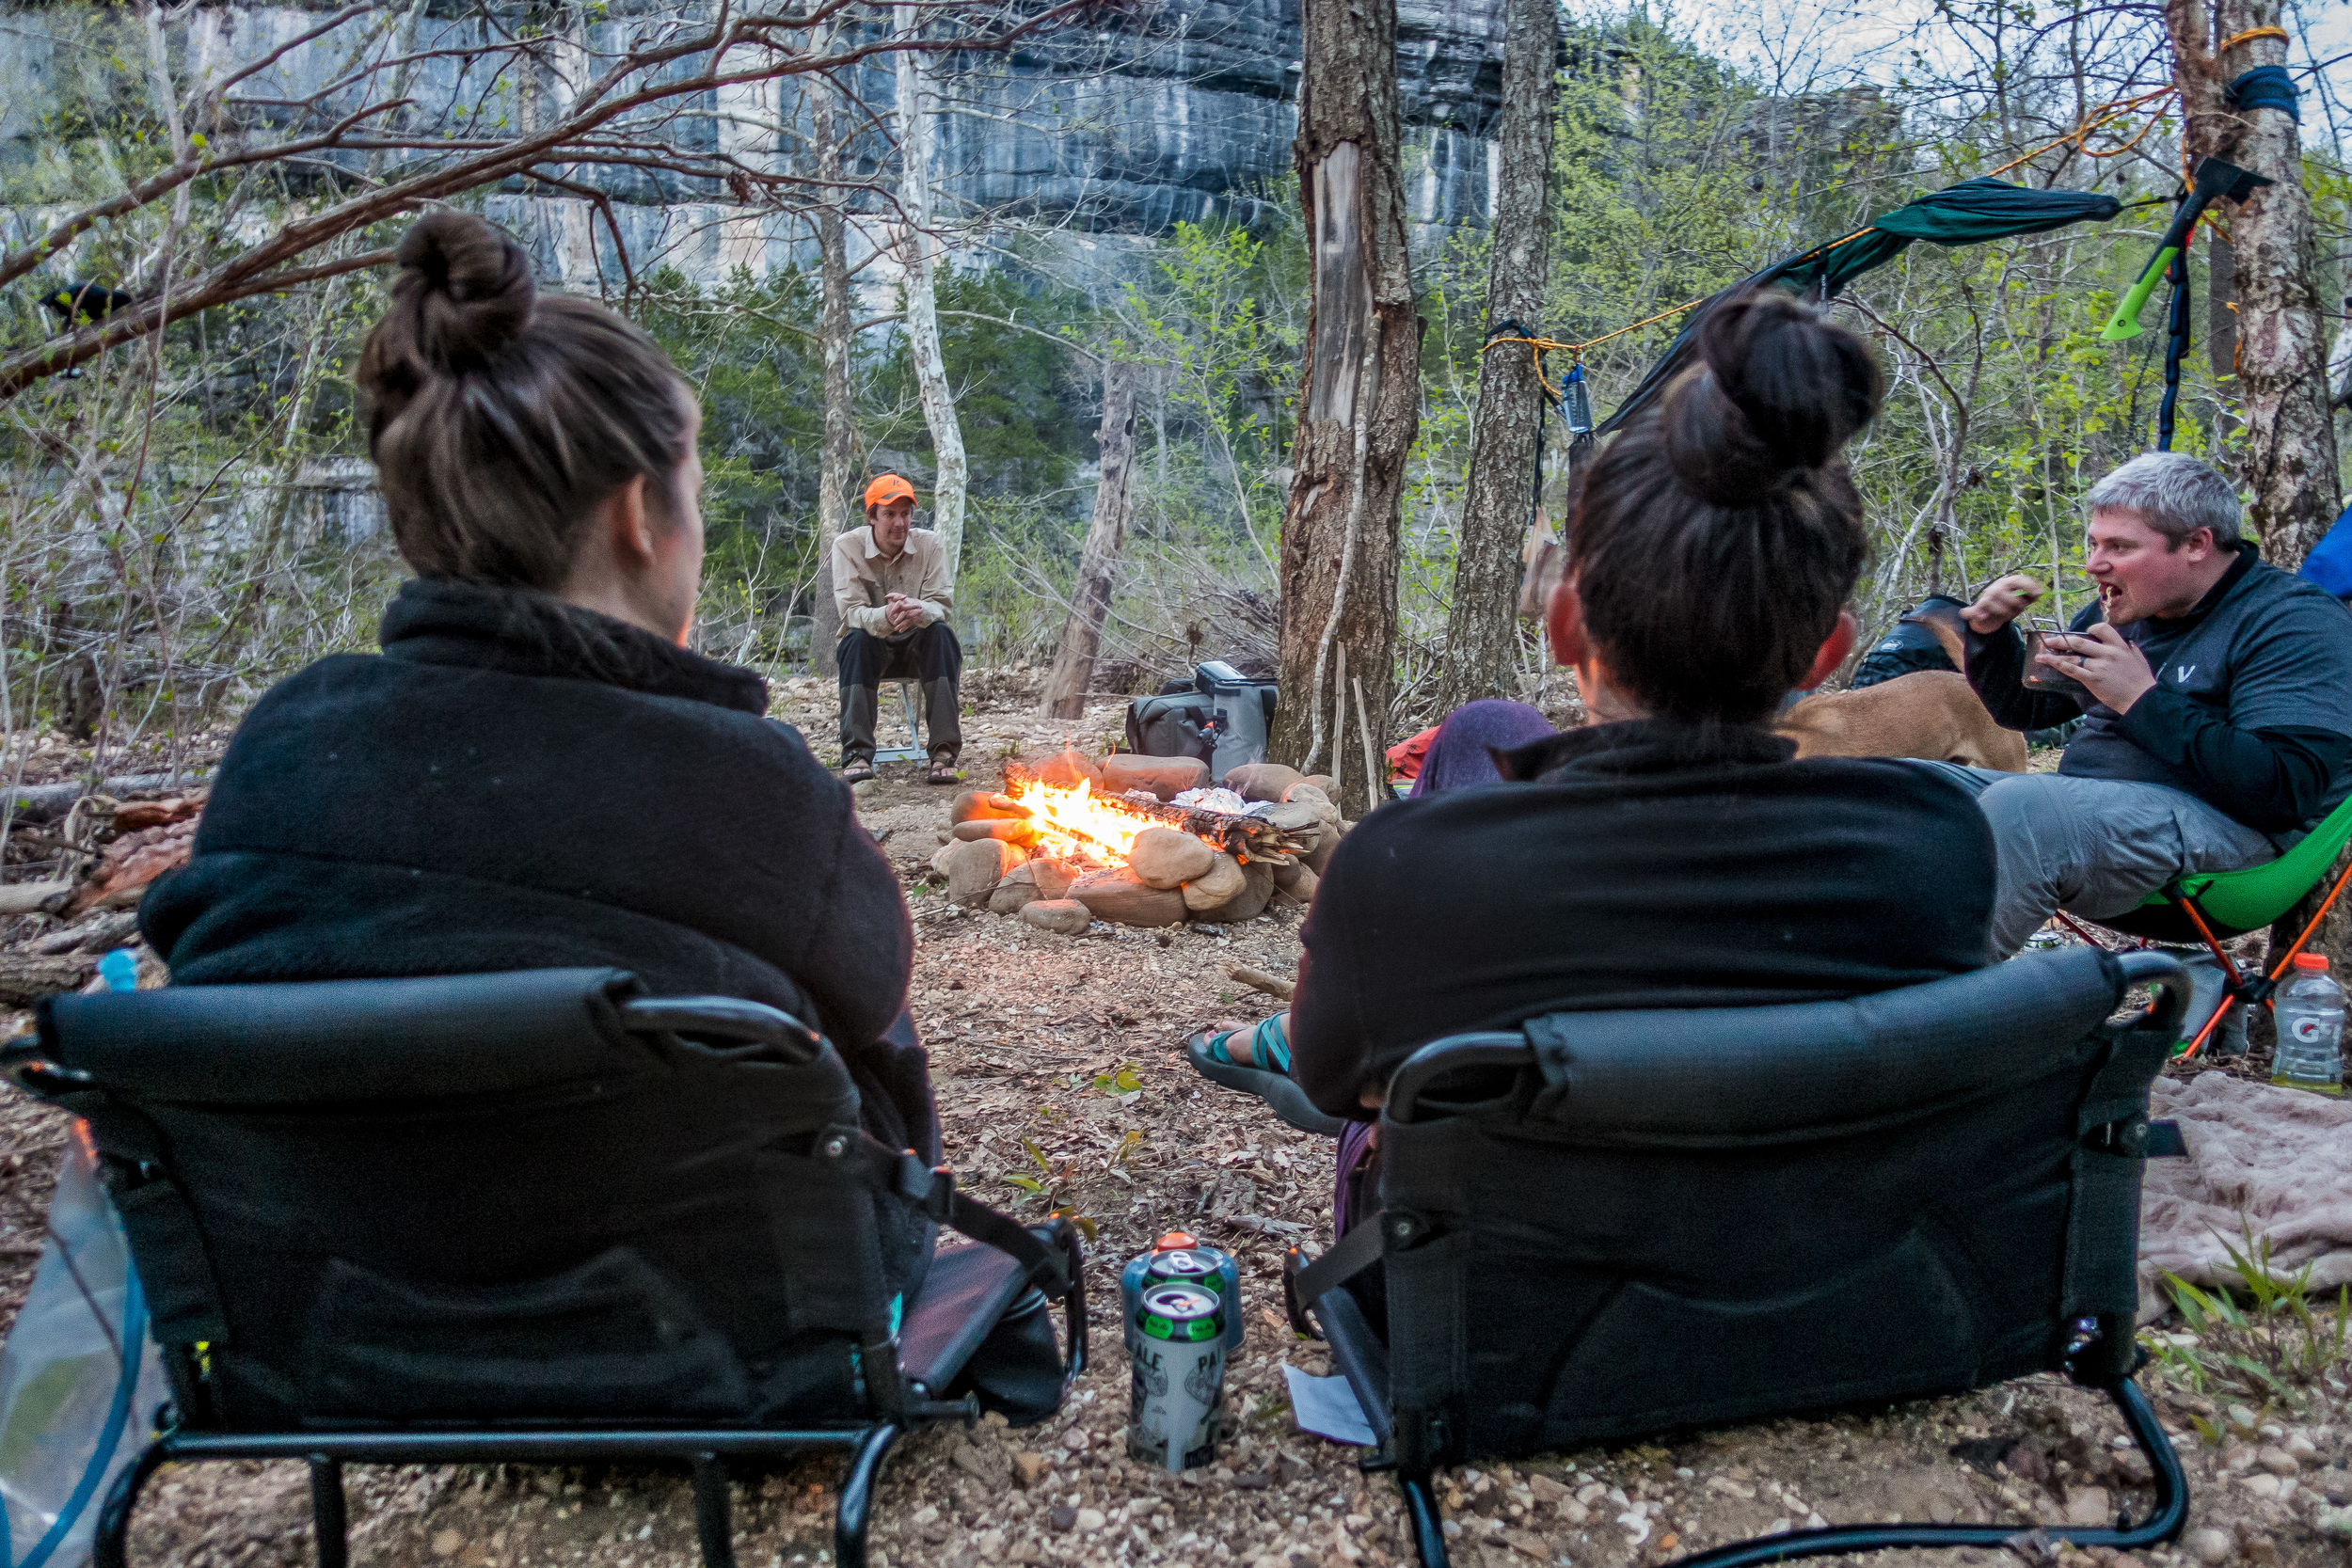 The Kyles Landing campground offers rustic camping along the Buffalo River Trail.